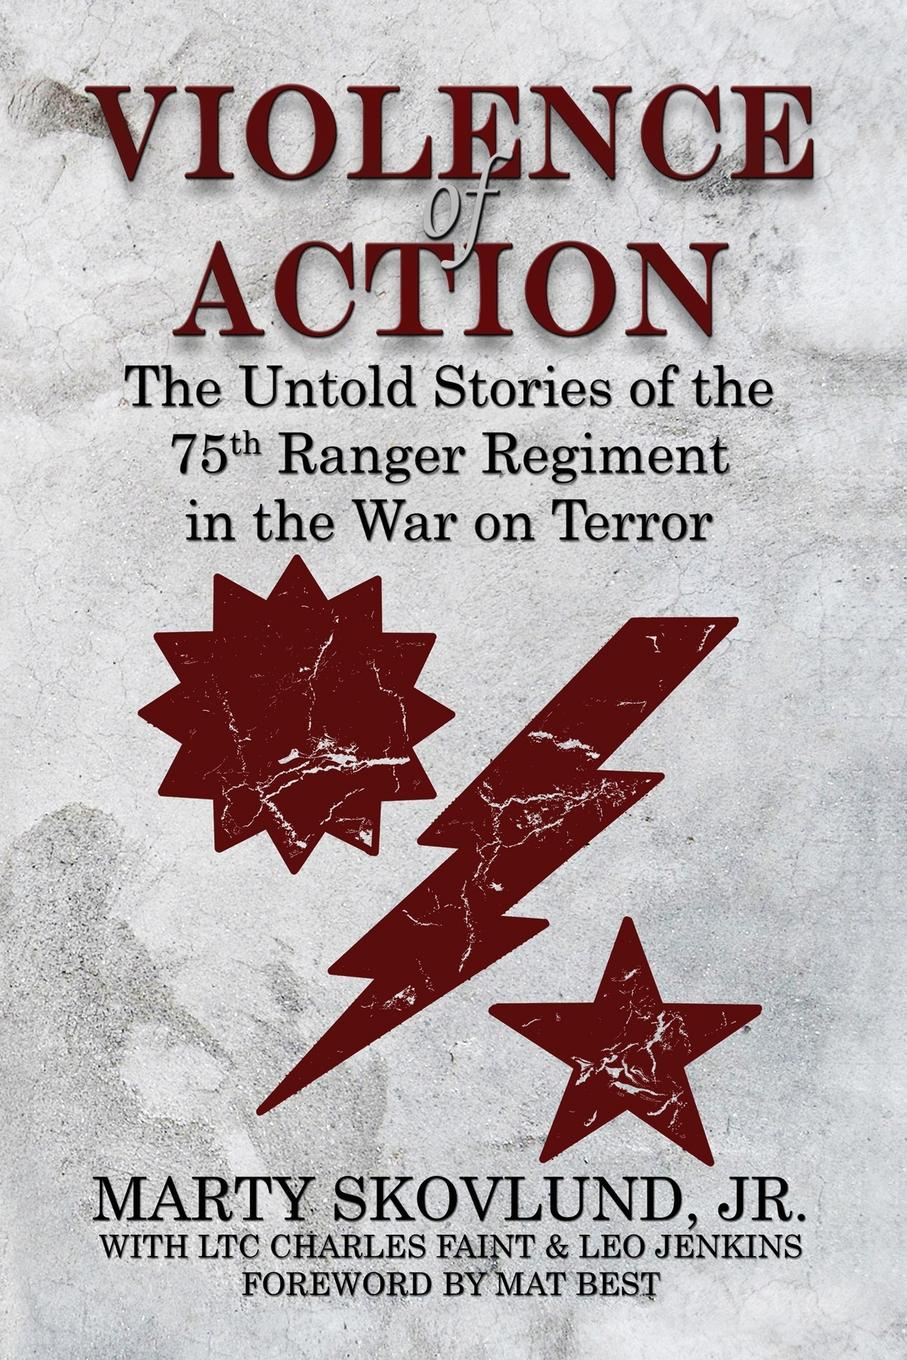 Marty Skovlund, Charles Faint, Leo Jenkins Violence of Action. The Untold Stories of the 75th Ranger Regiment in the War on Terror the white terror